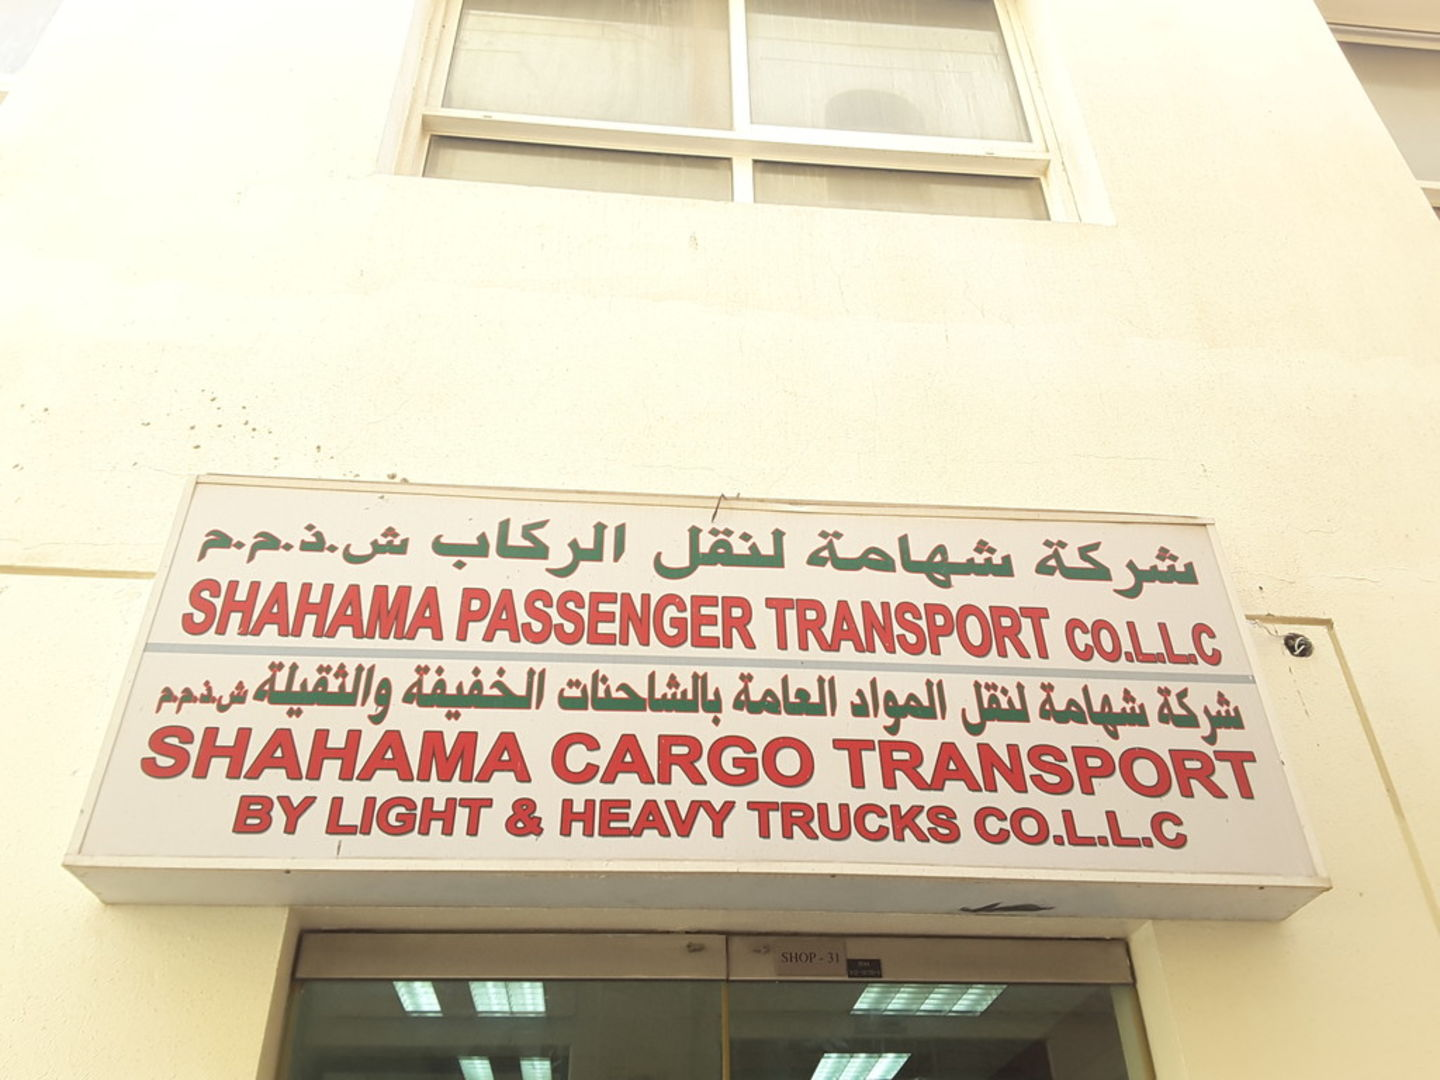 HiDubai-business-shahama-cargo-transport-by-light-heavy-trucks-co-shipping-logistics-road-cargo-services-meena-bazar-al-souq-al-kabeer-dubai-2